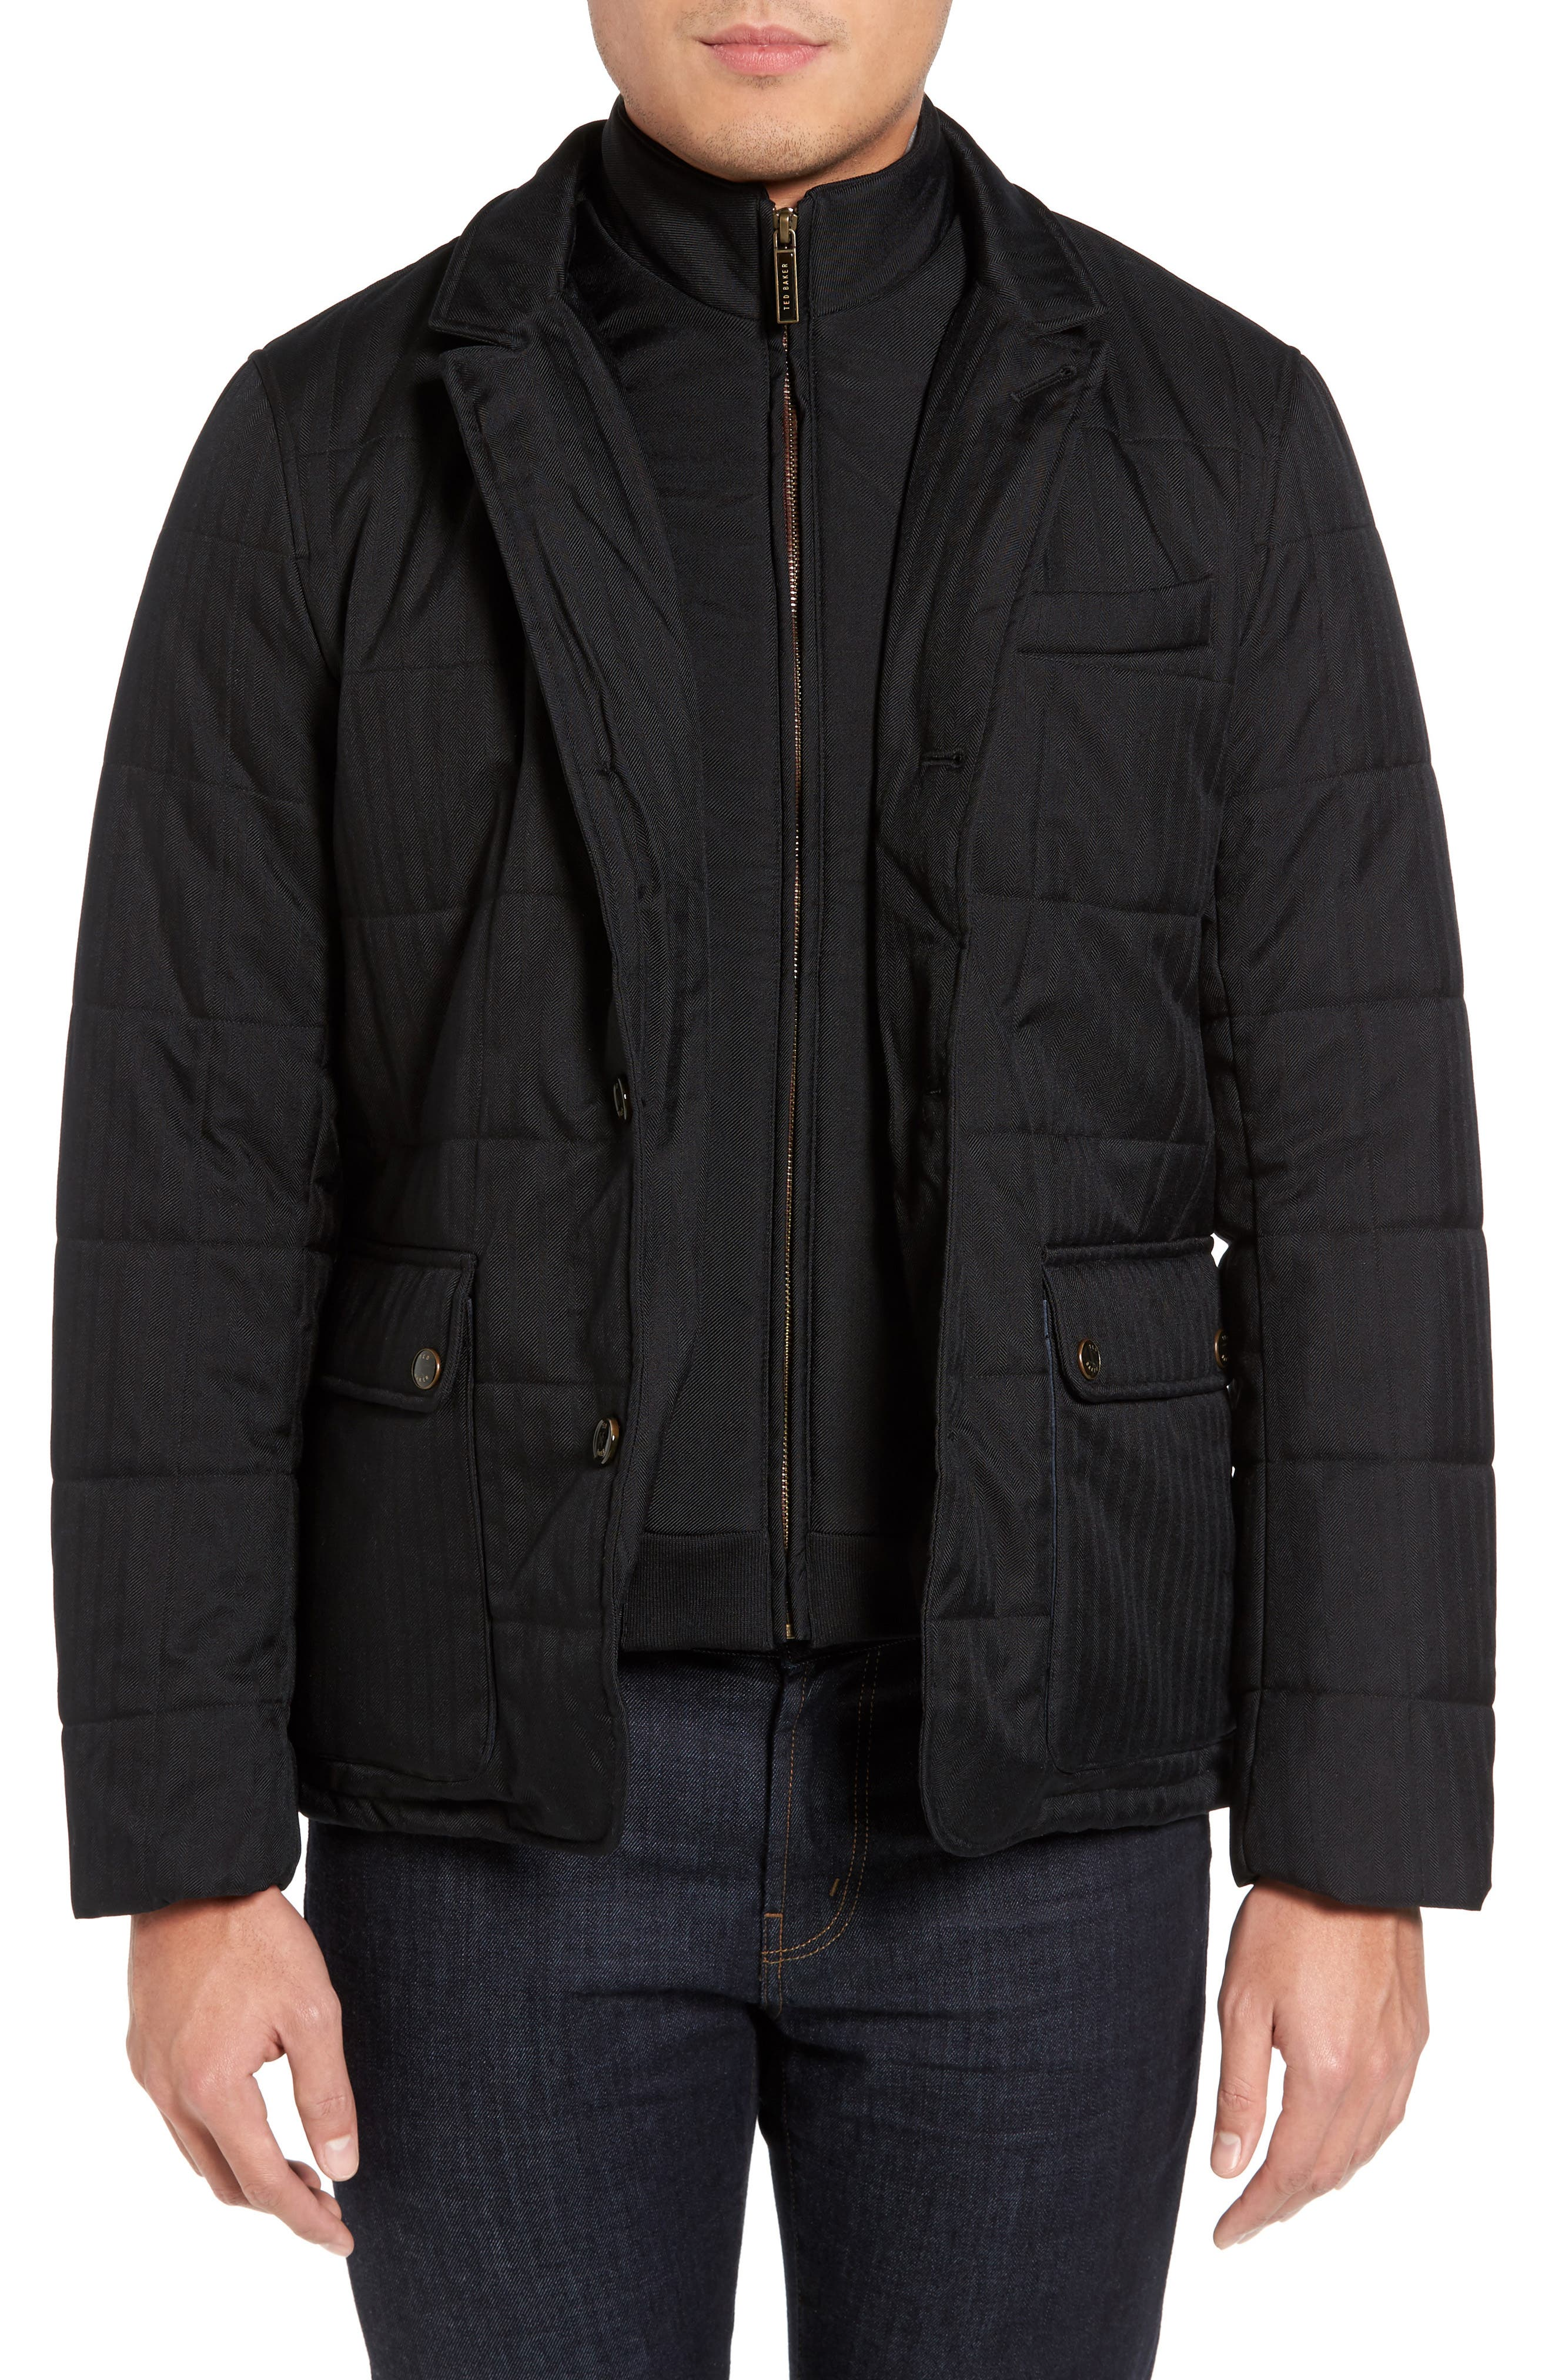 Jasper Trim Fit Quilted Jacket with Removable Bib,                             Main thumbnail 1, color,